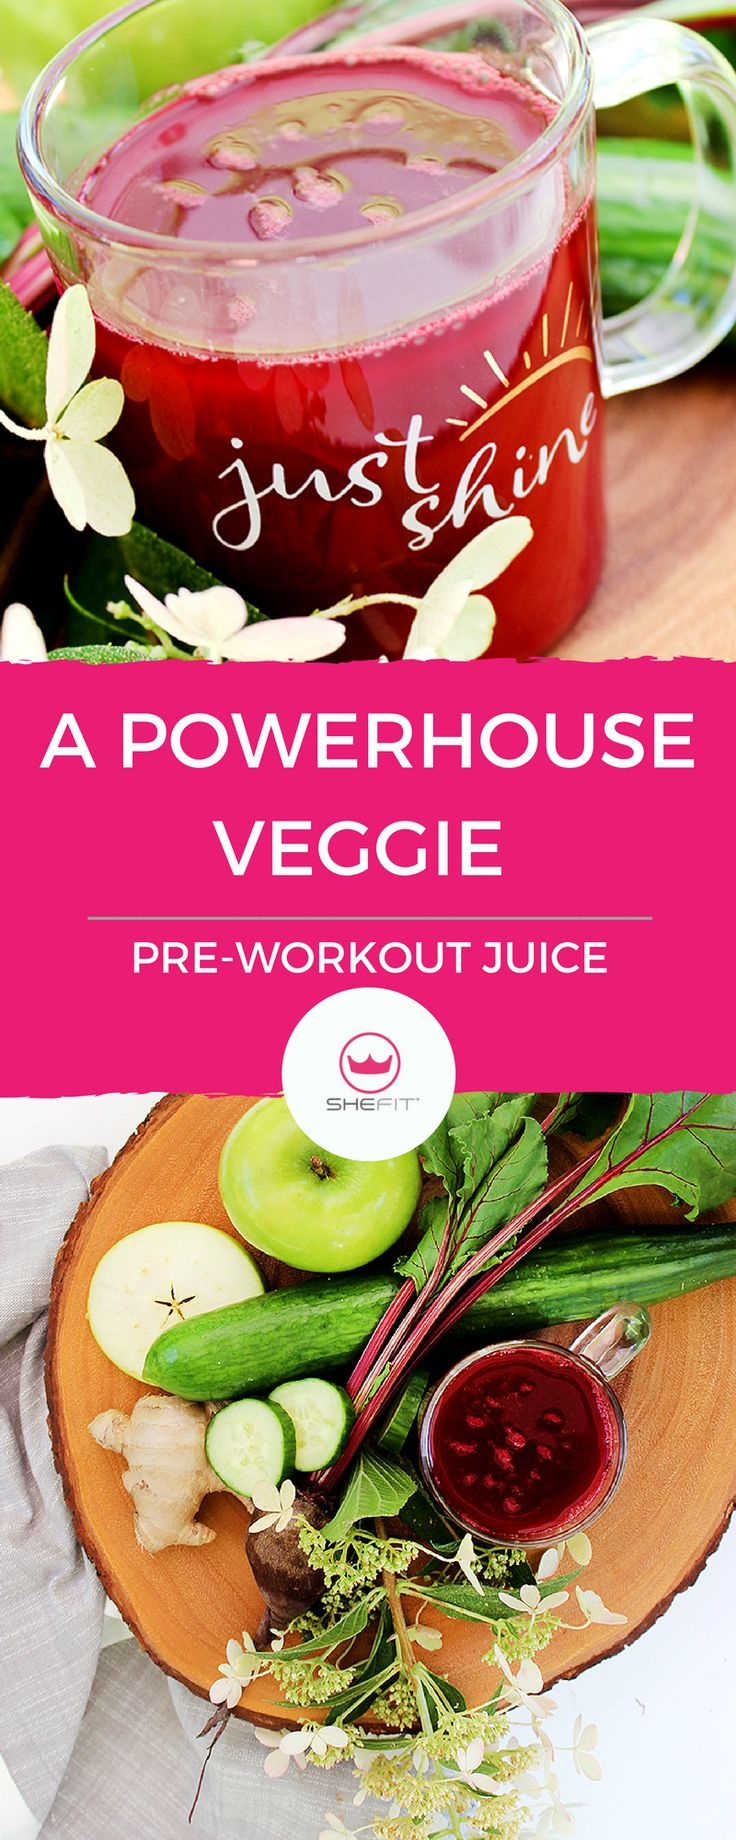 Beets for pre workout fuel 3 all natural homemade drink recipes fitness athletes to use beets as a natural preworkout energydrink these homemade pre workout drink recipes for women are guaranteed to give you an forumfinder Image collections